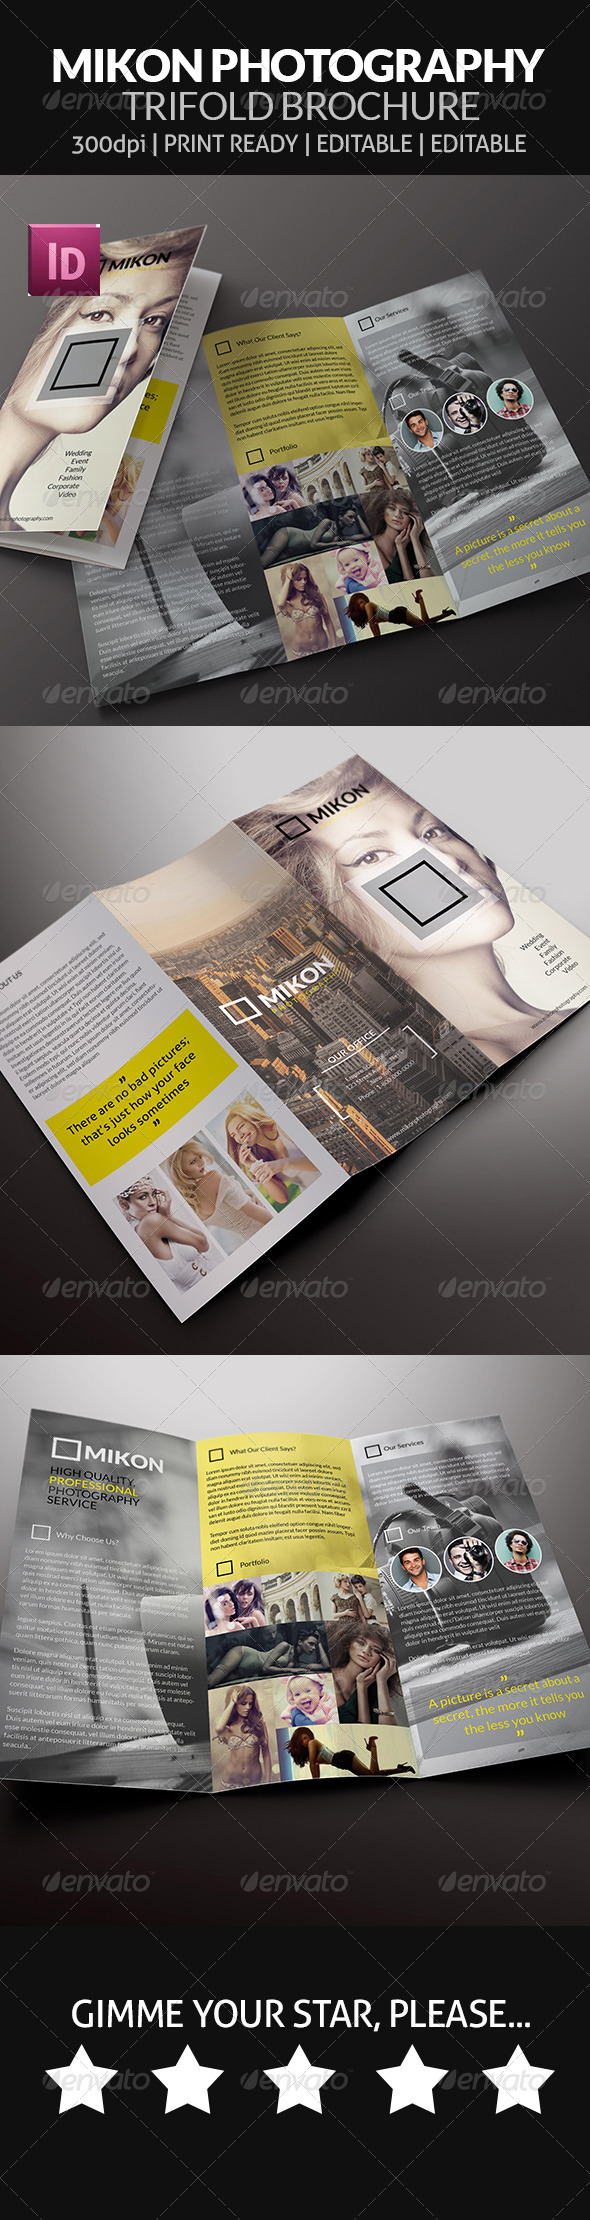 Mikon Photography Trifold Brochure